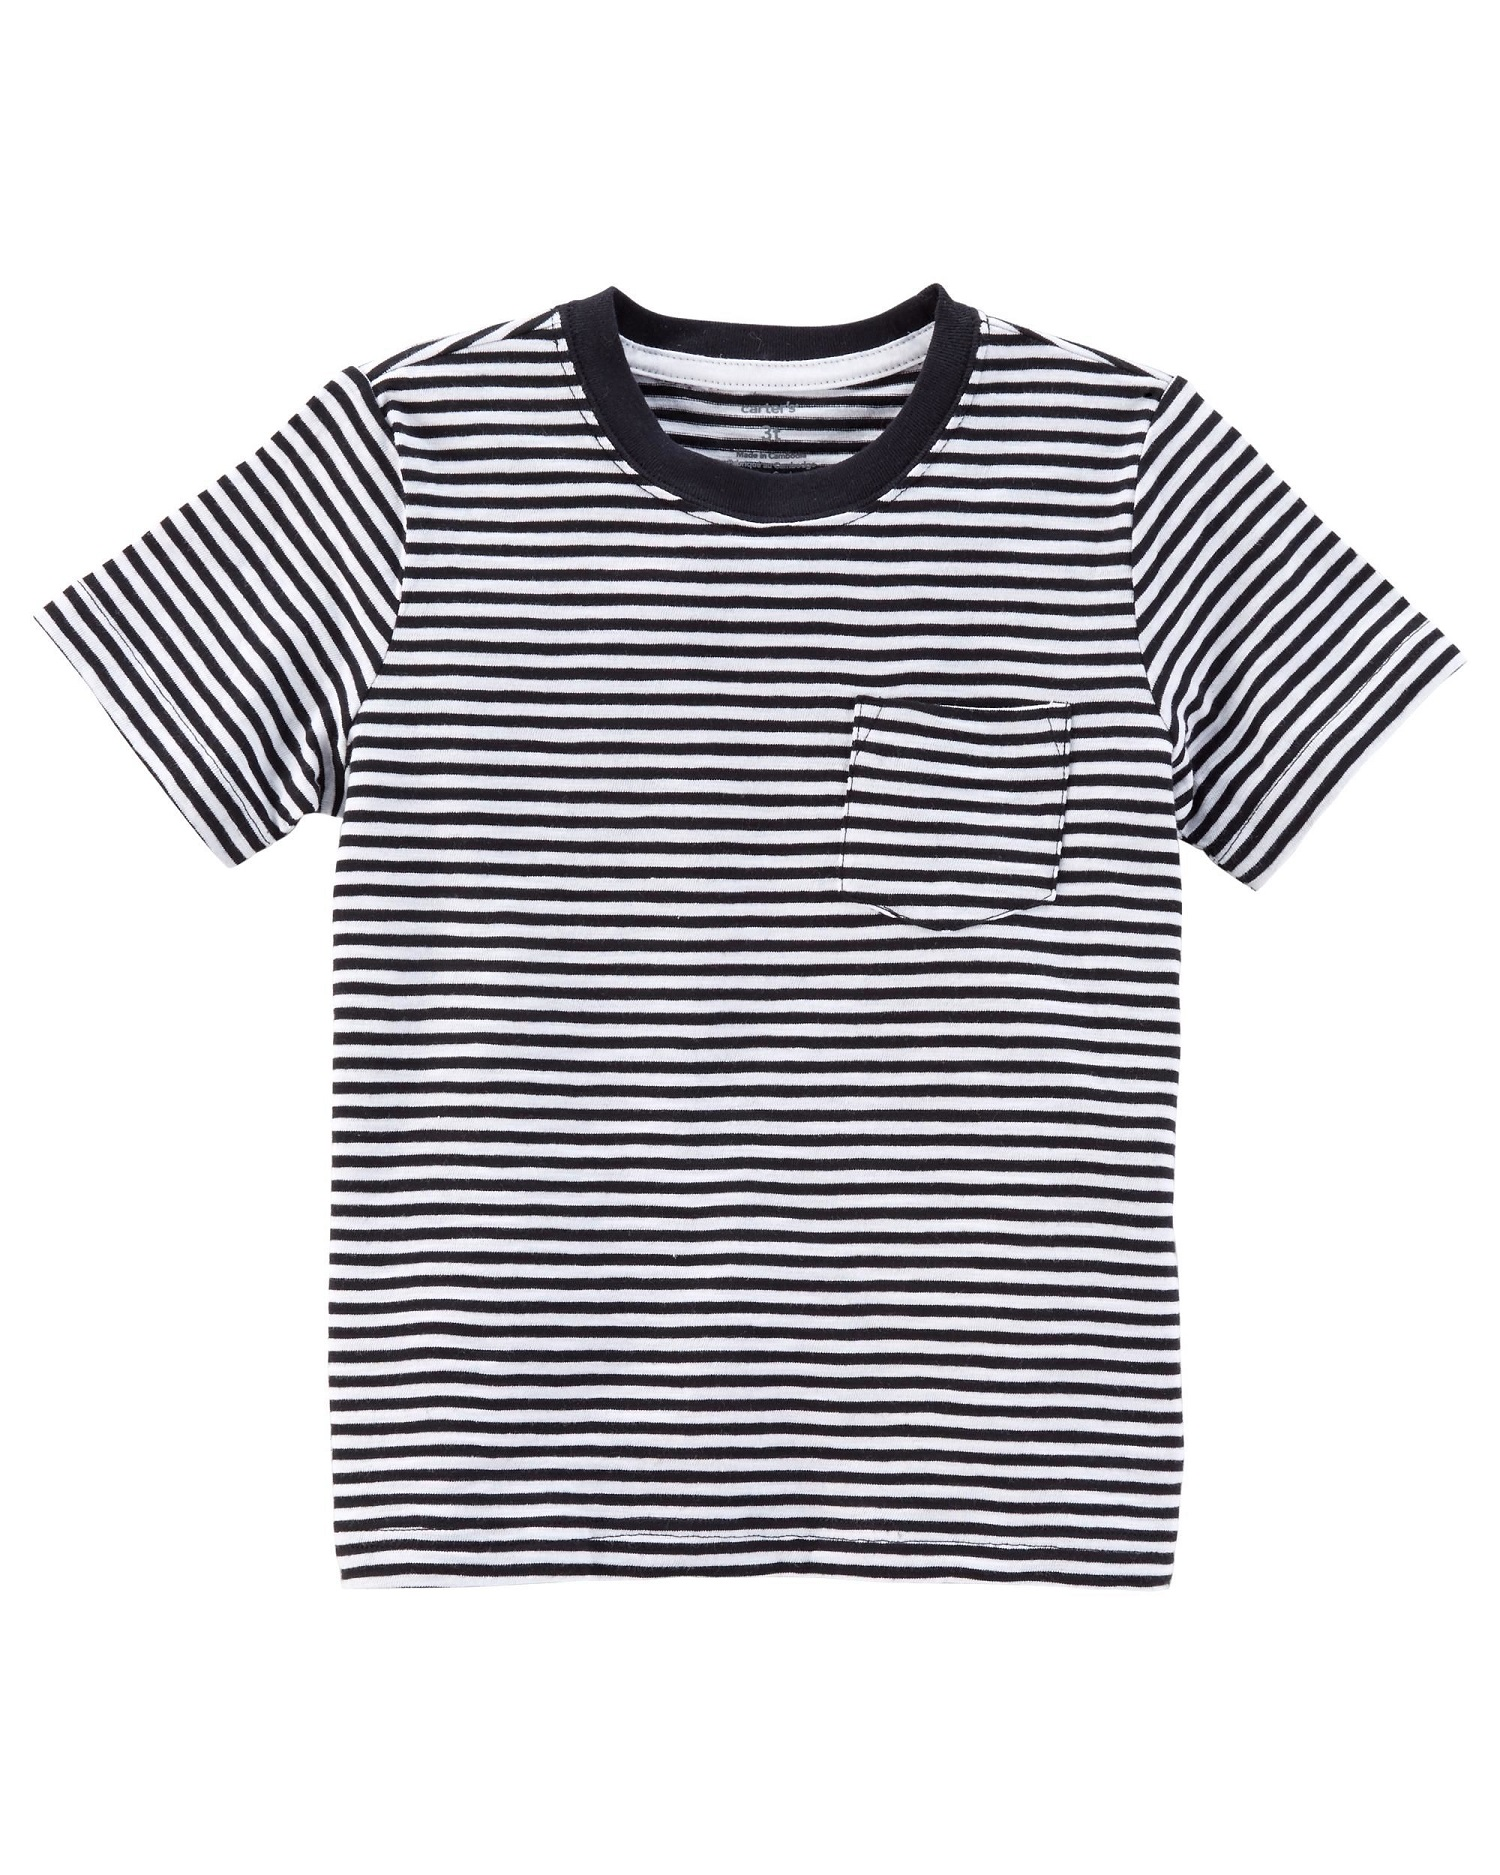 Carter's Little Boys' Striped Slub Jersey Tee, Black/White Stripe